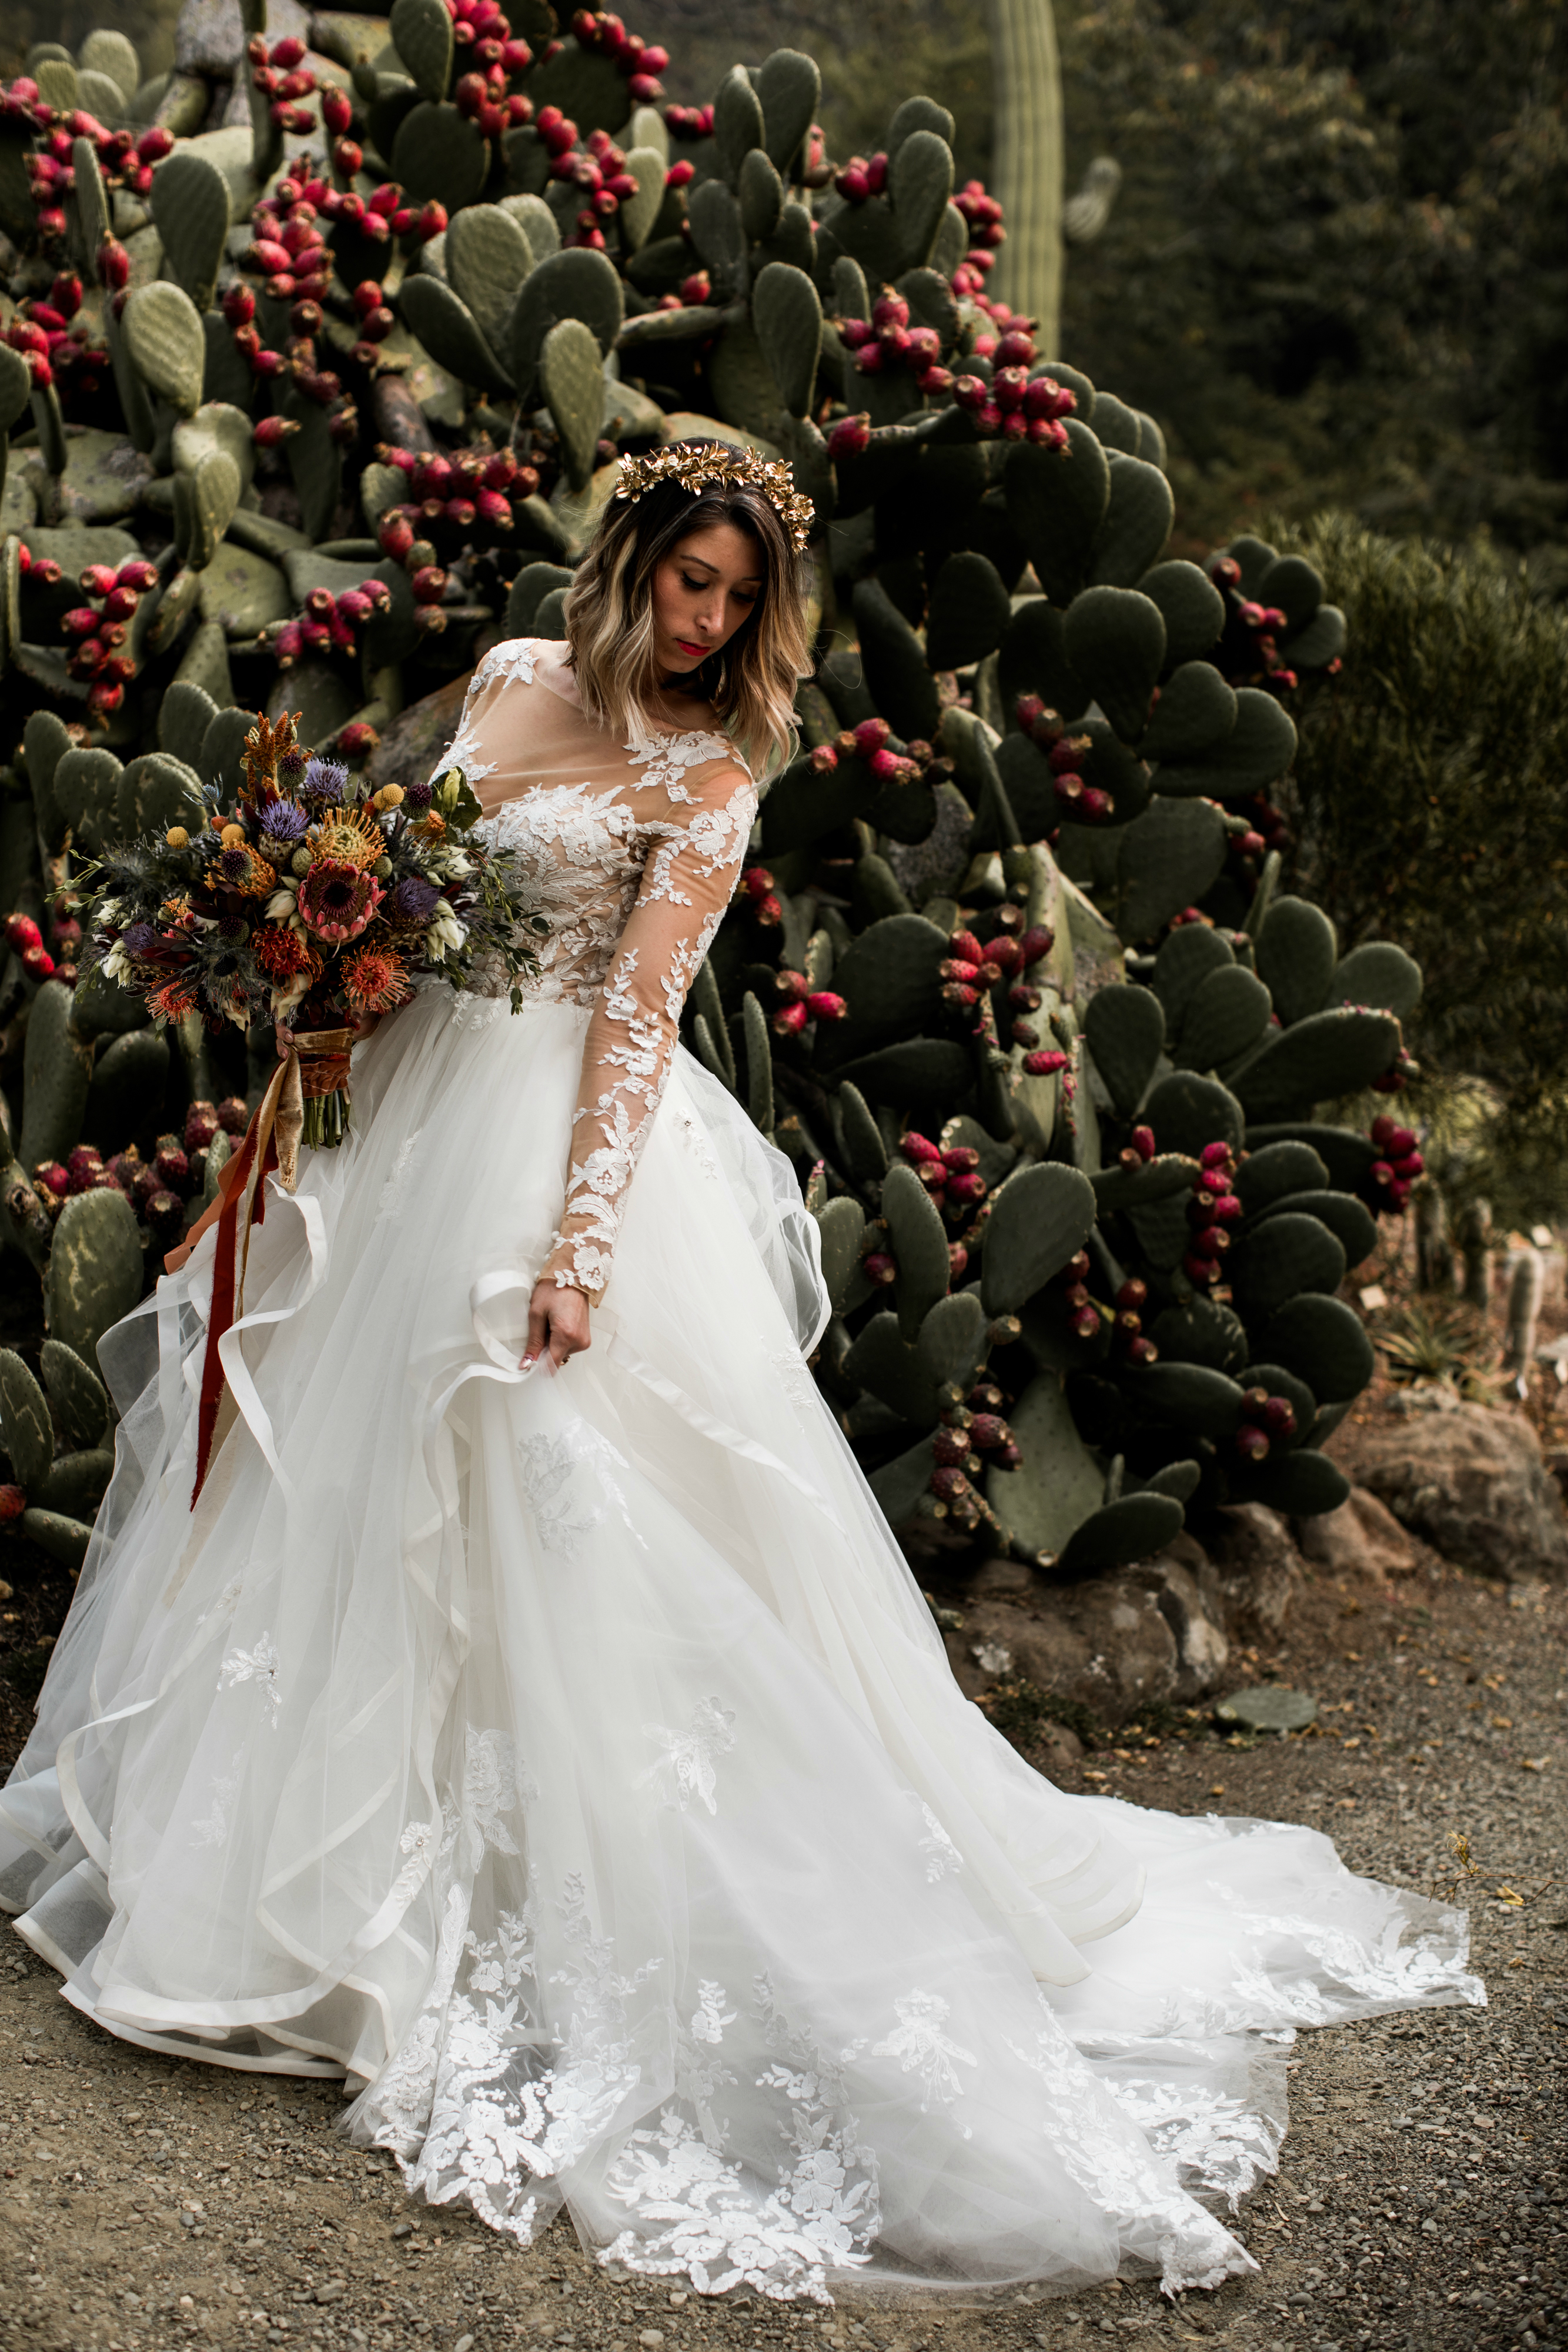 Brides order online wedding dresses from Anomalie with tiered skirts and floral lace.